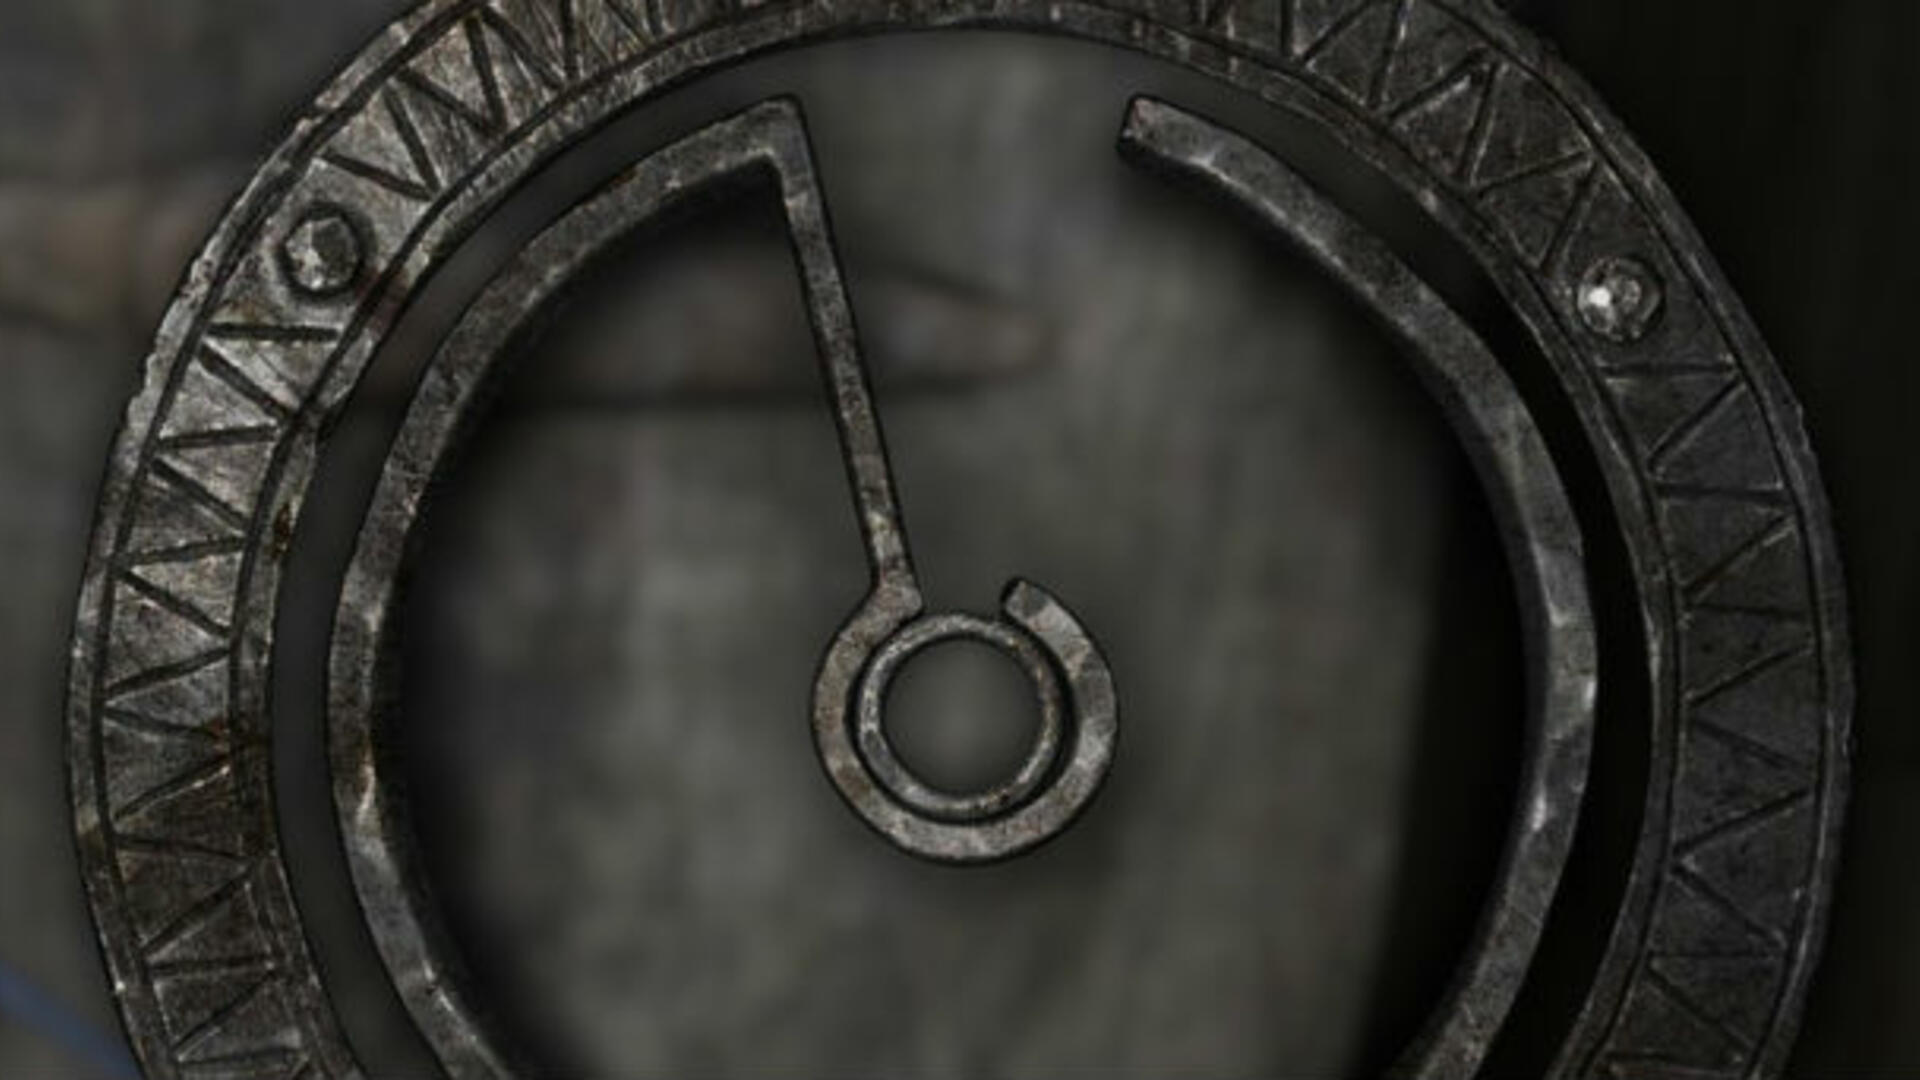 Lockpicking Mod for Kingdom Come: Deliverance Soothes Angry